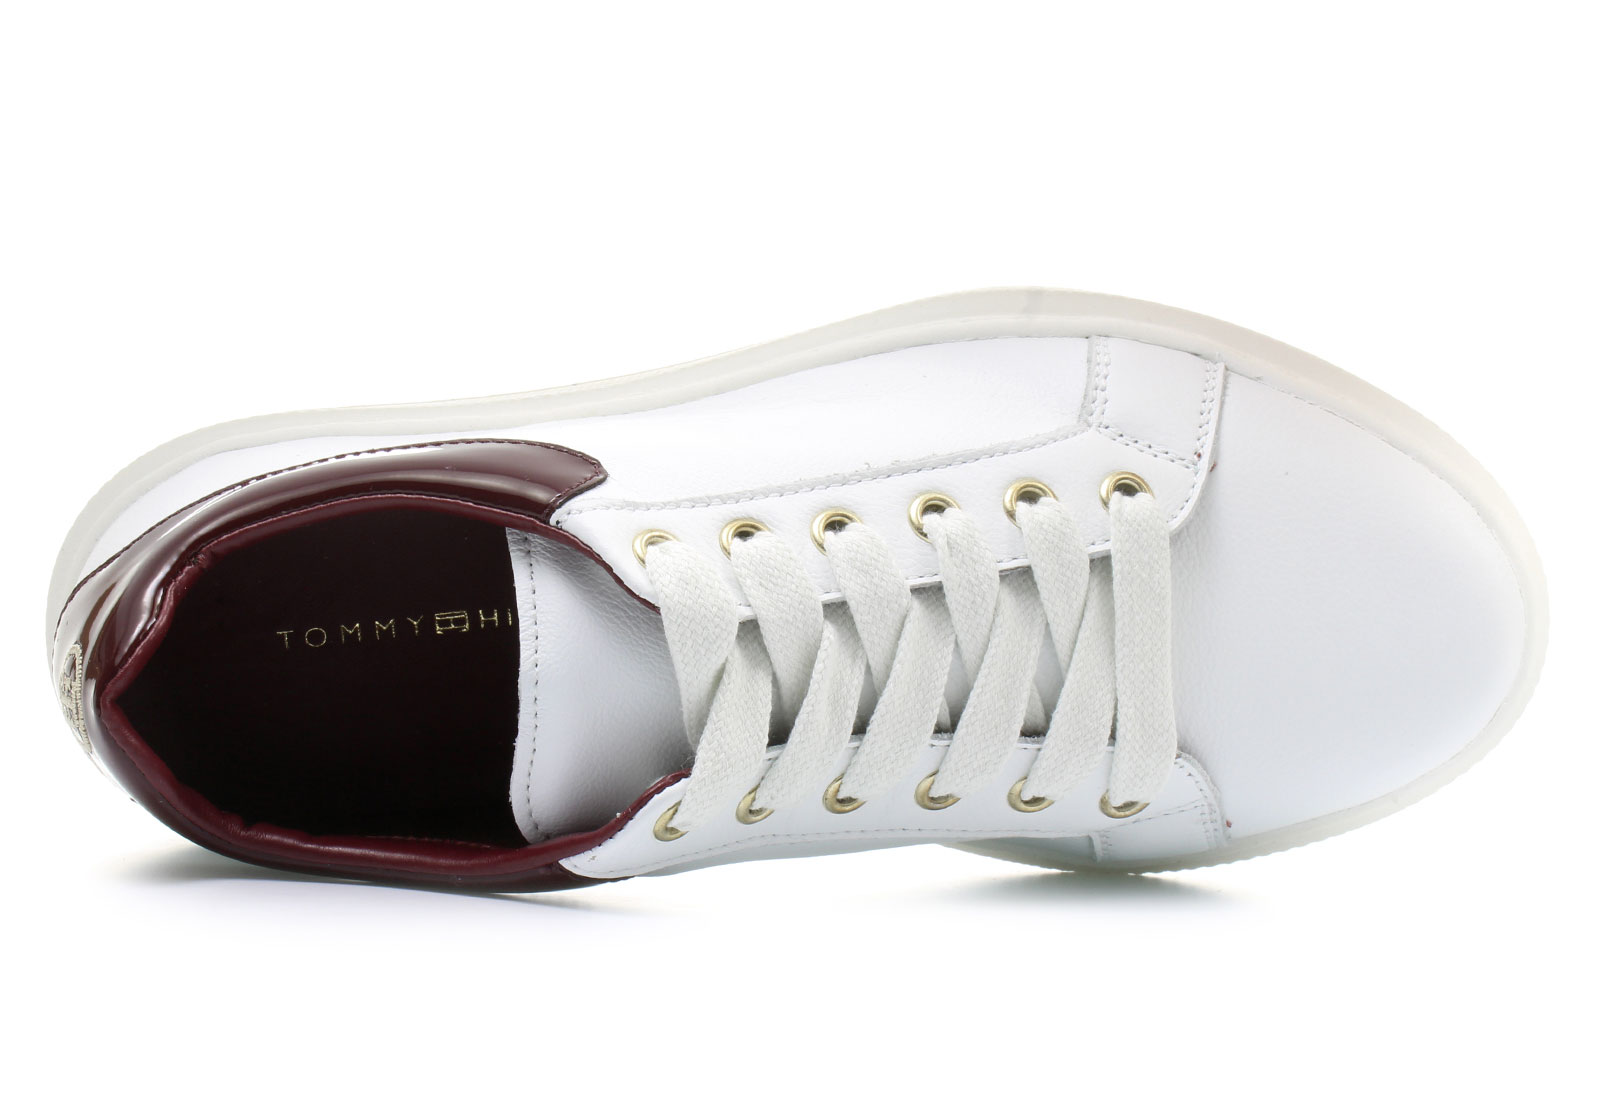 5b3c401c61659 Tommy Hilfiger Shoes - Sabrina 1a - 16F-2036-214 - Online shop for ...